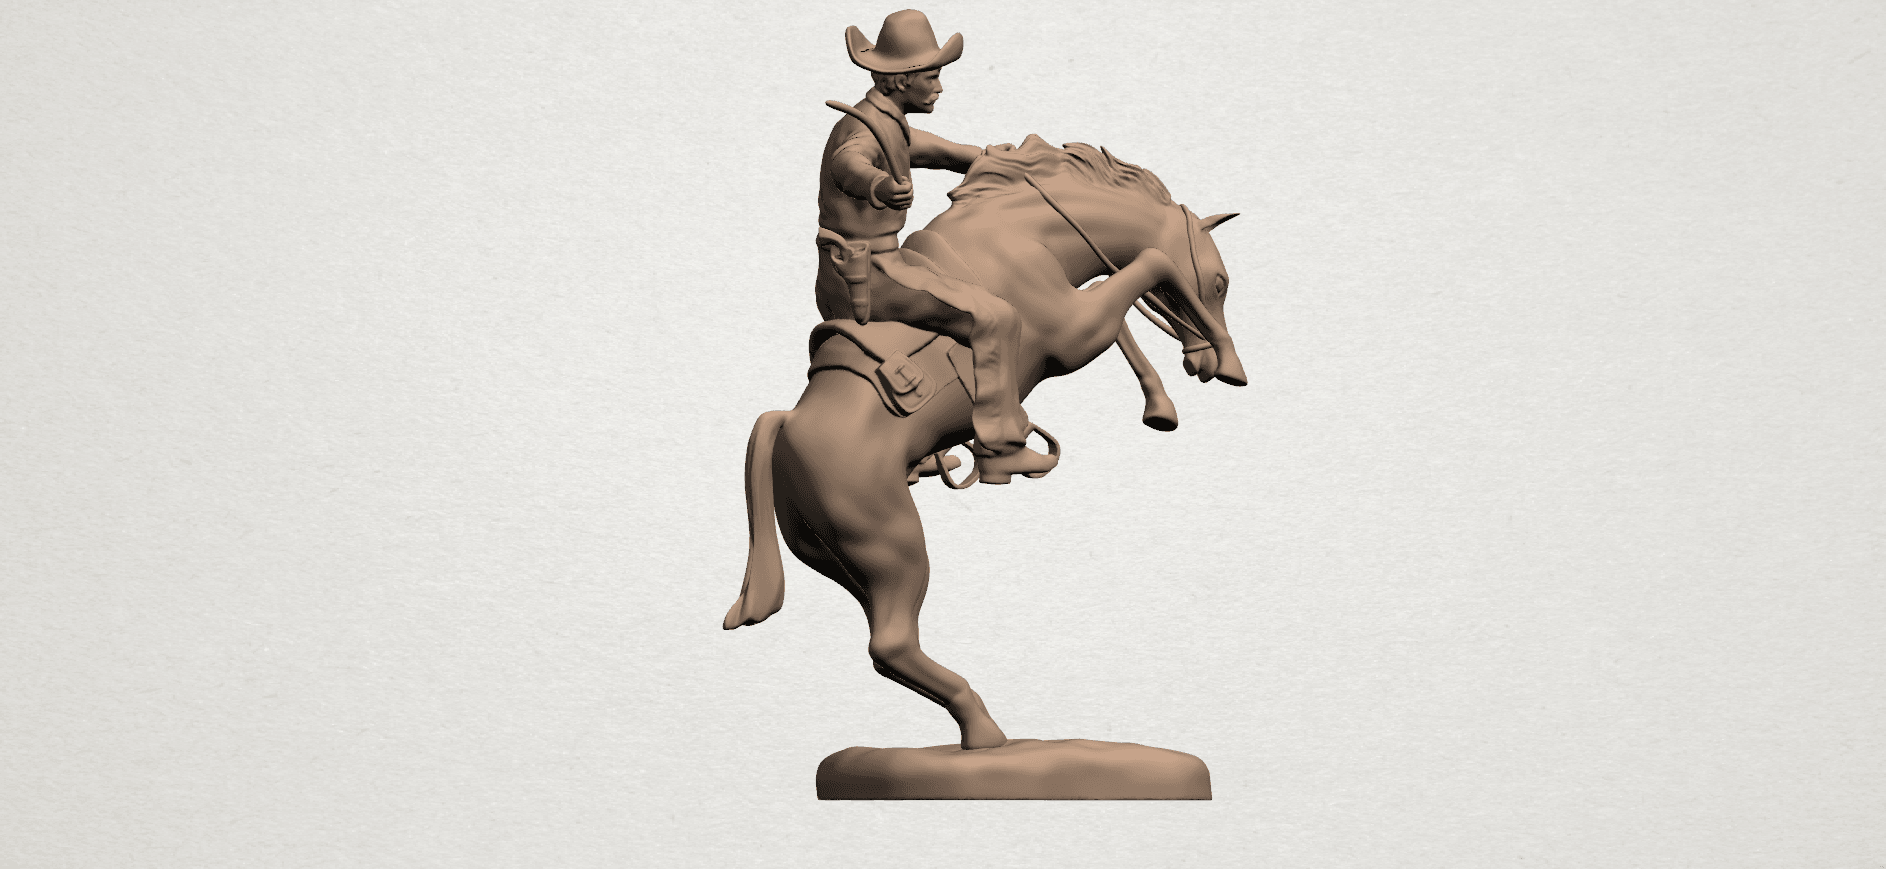 Rider A10.png Download free STL file Rider 01 • 3D printer template, GeorgesNikkei